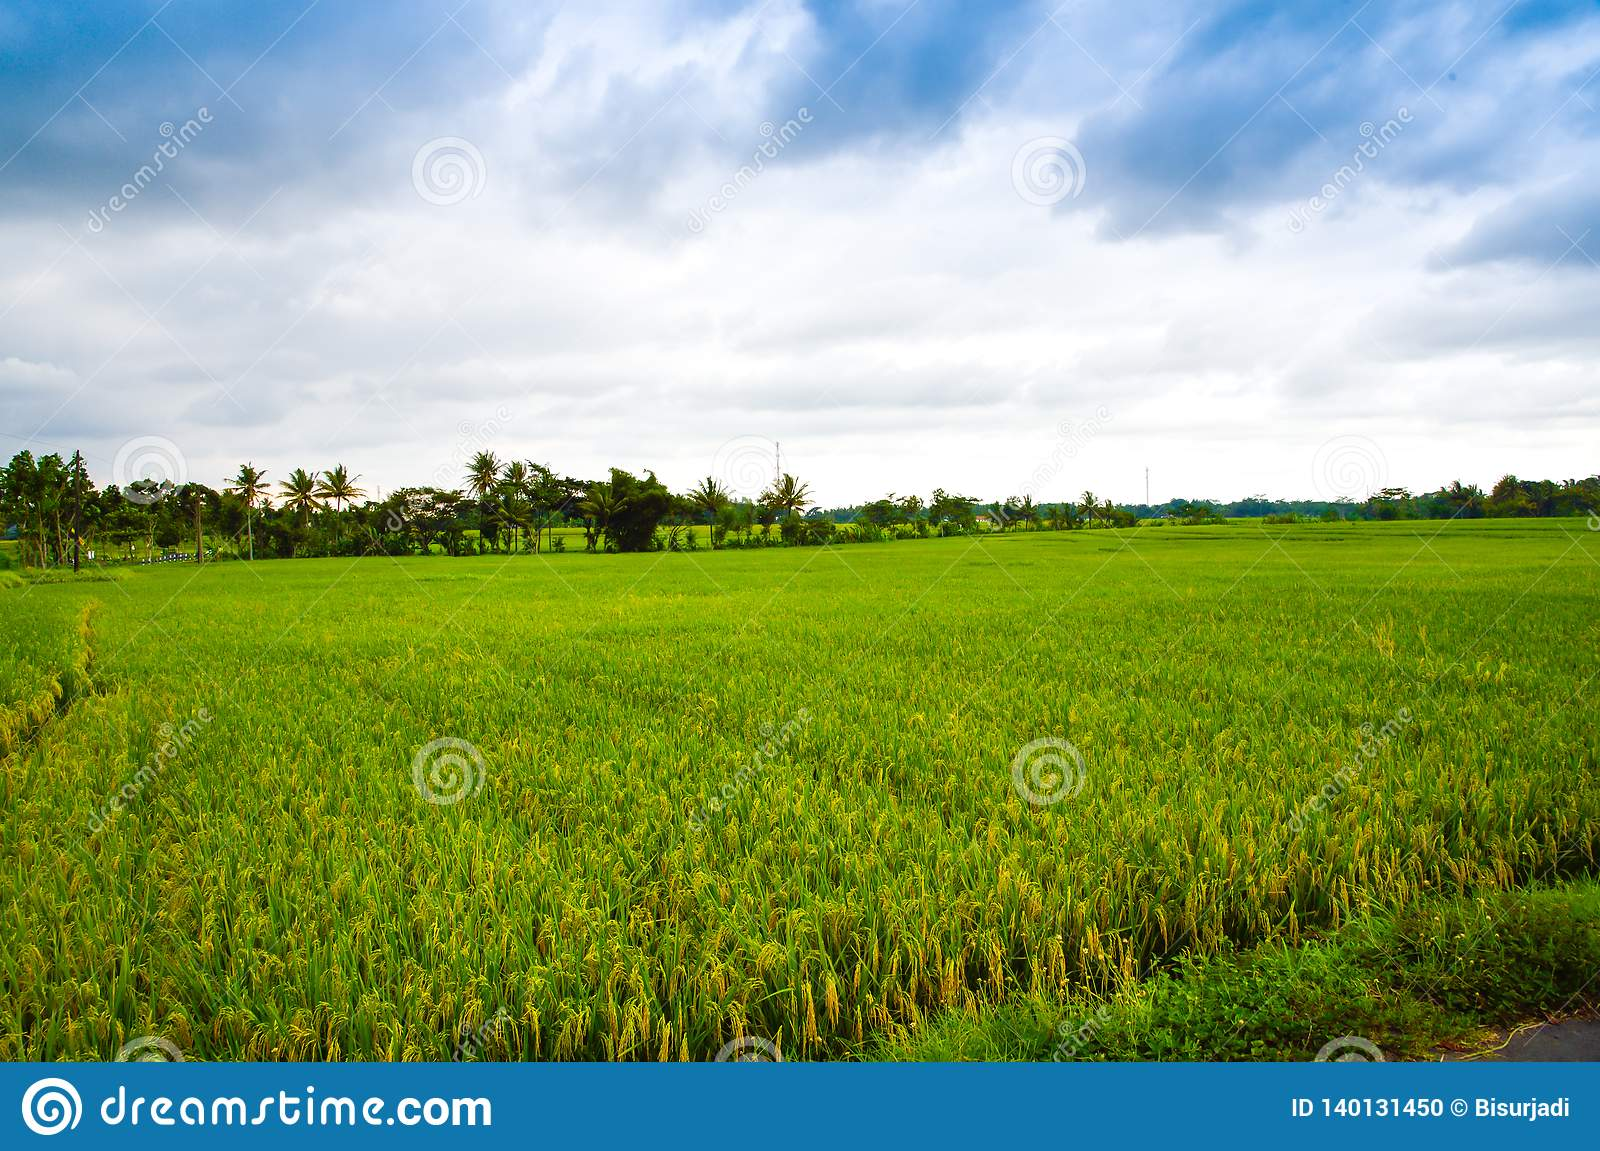 Lush green rice terrace field with mountain and cloudy blue sky